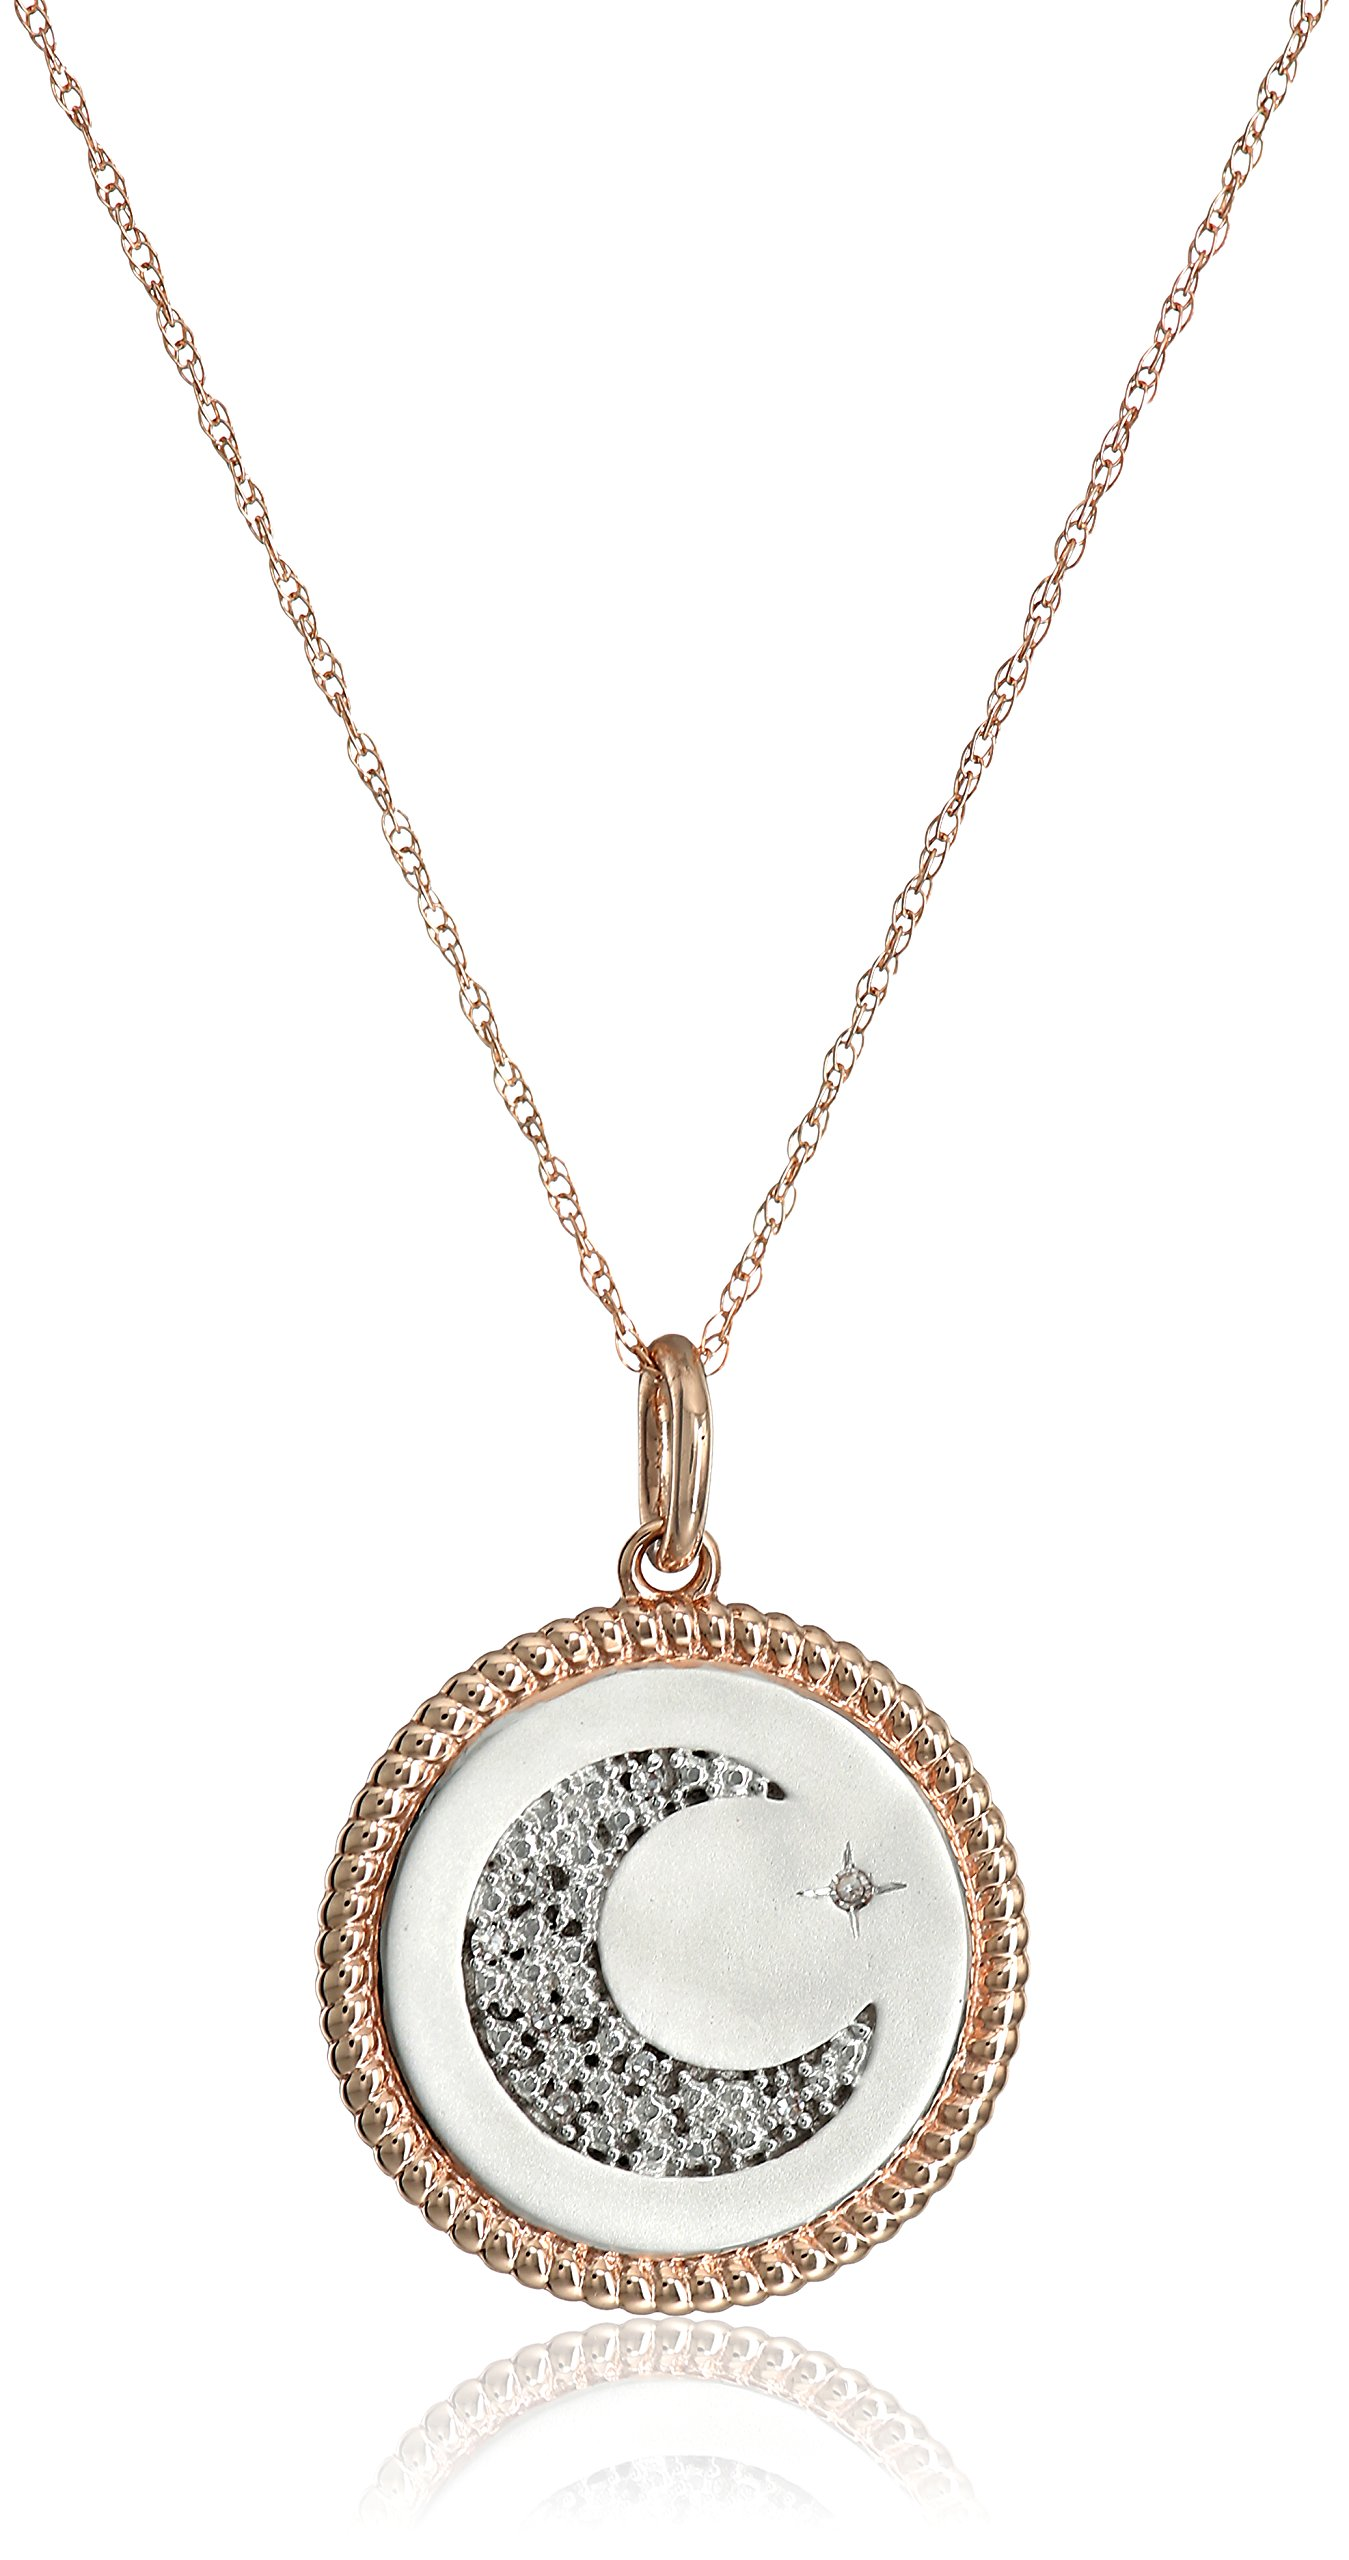 10k Rose Gold Diamond Accent ''I Love You To The Moon and Back'' Pendant Necklace, 18''